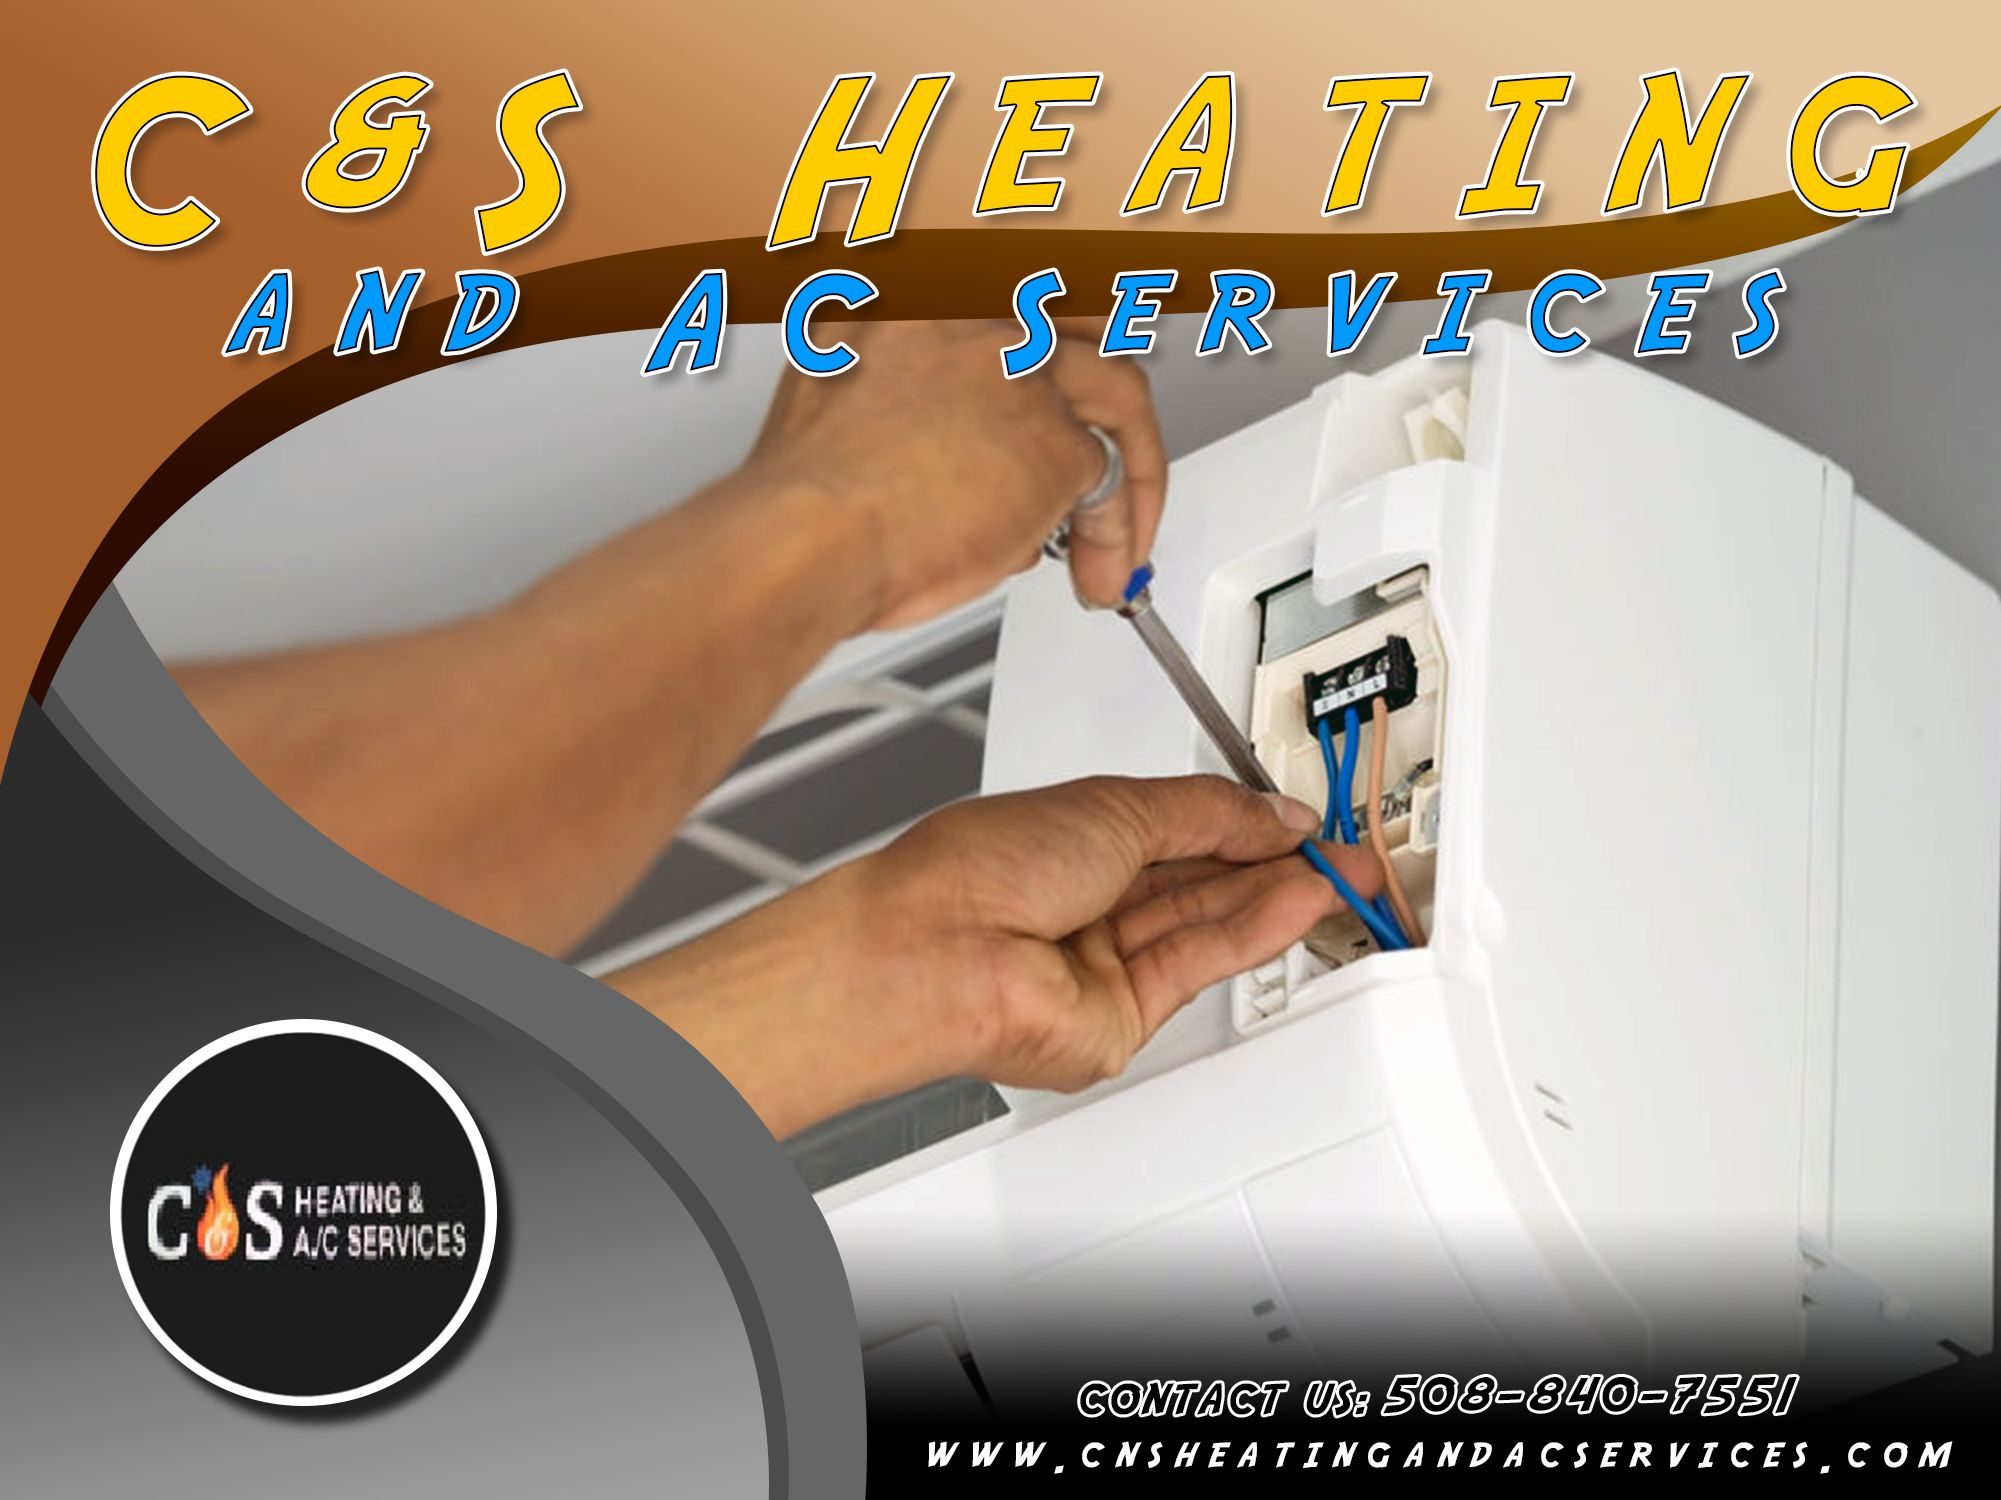 C &S Heating and AC Services proudly offer air condition